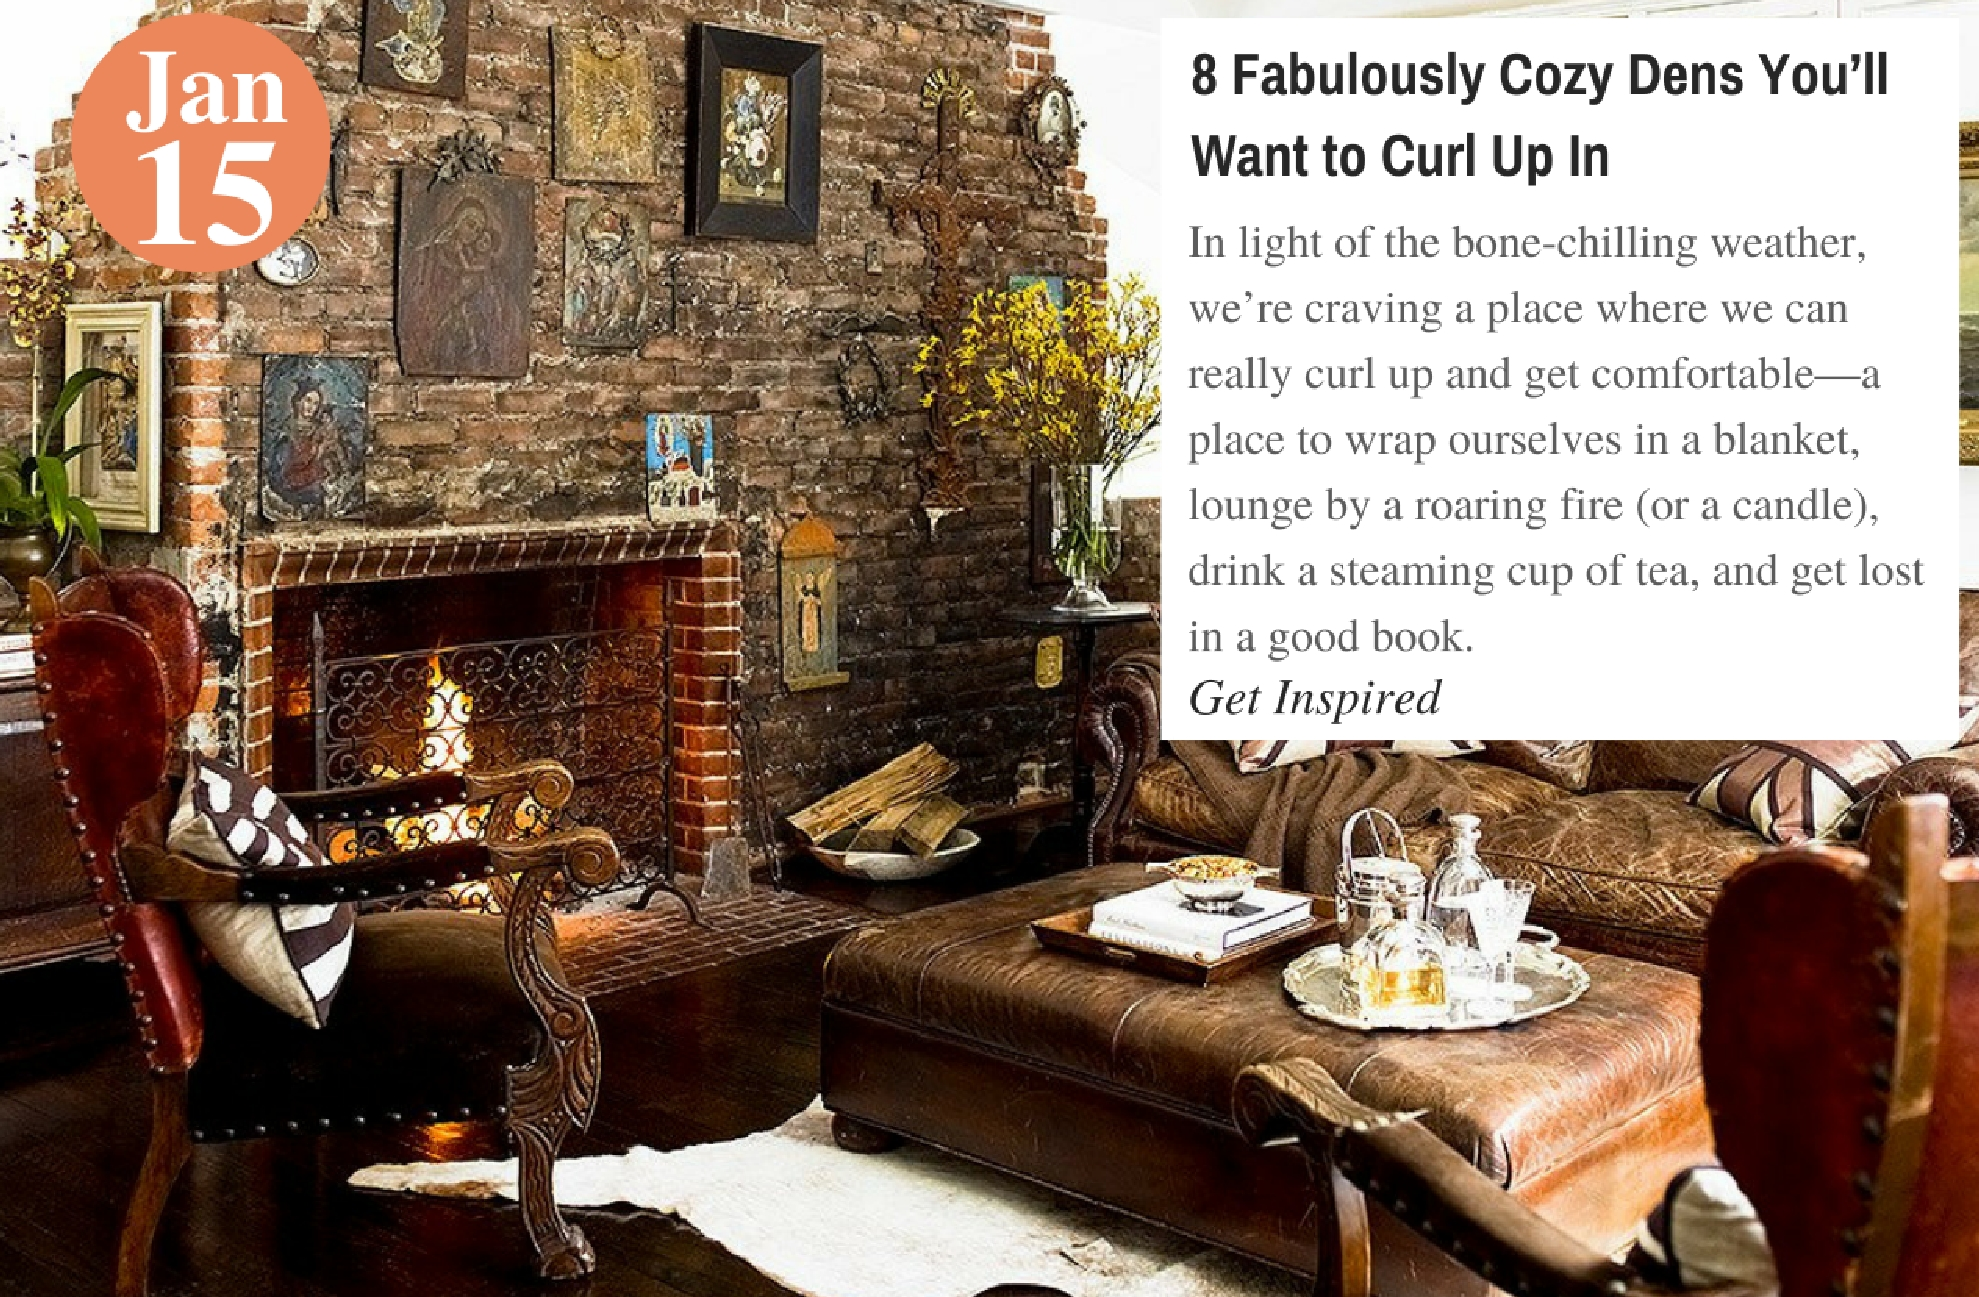 8 Fabulously Cozy Dens You'll Want to Curl Up In